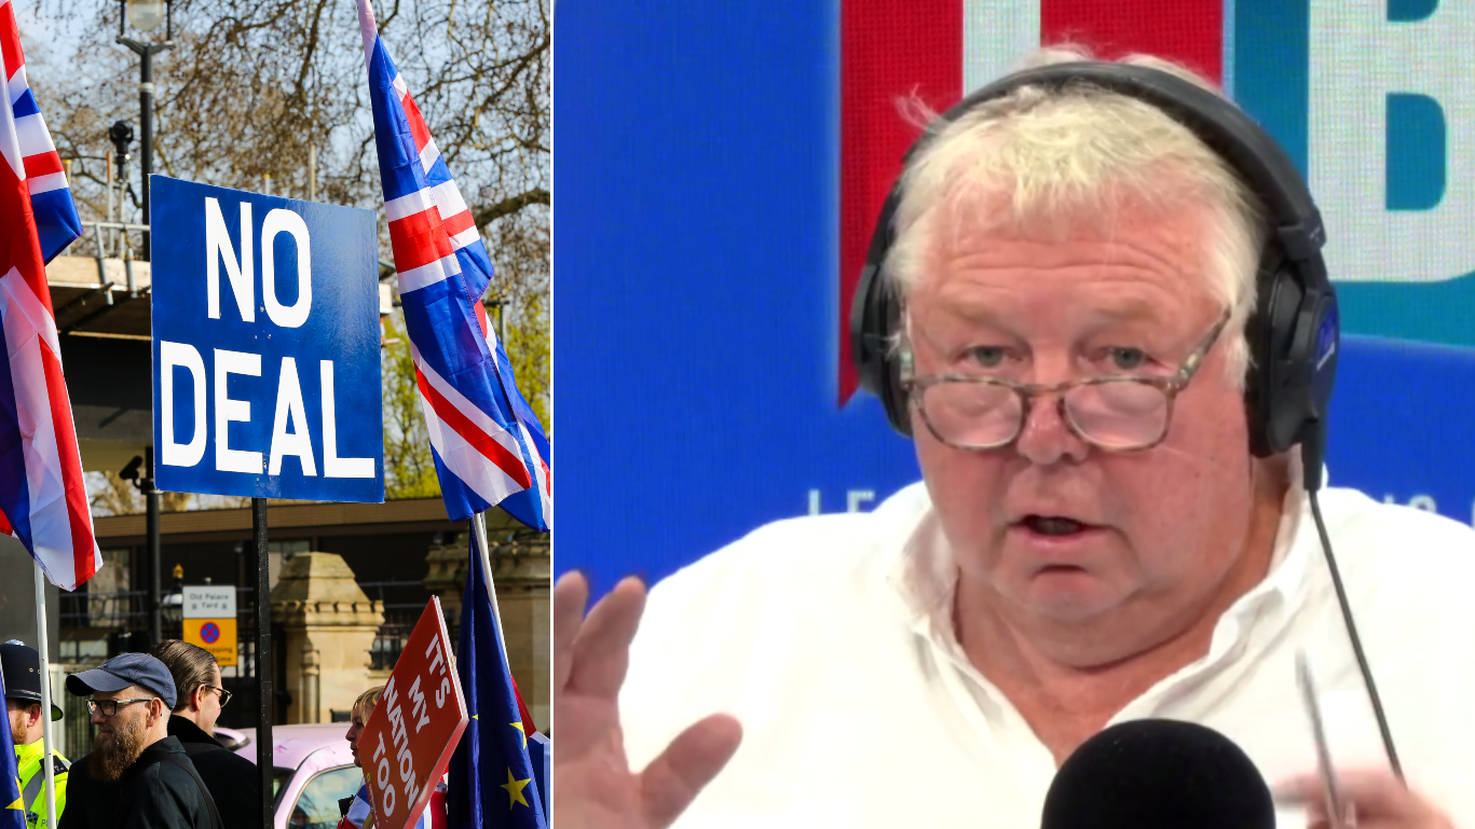 Nick Ferrari's Withering Response To Caller Scaremongering Over No-Deal Brexit